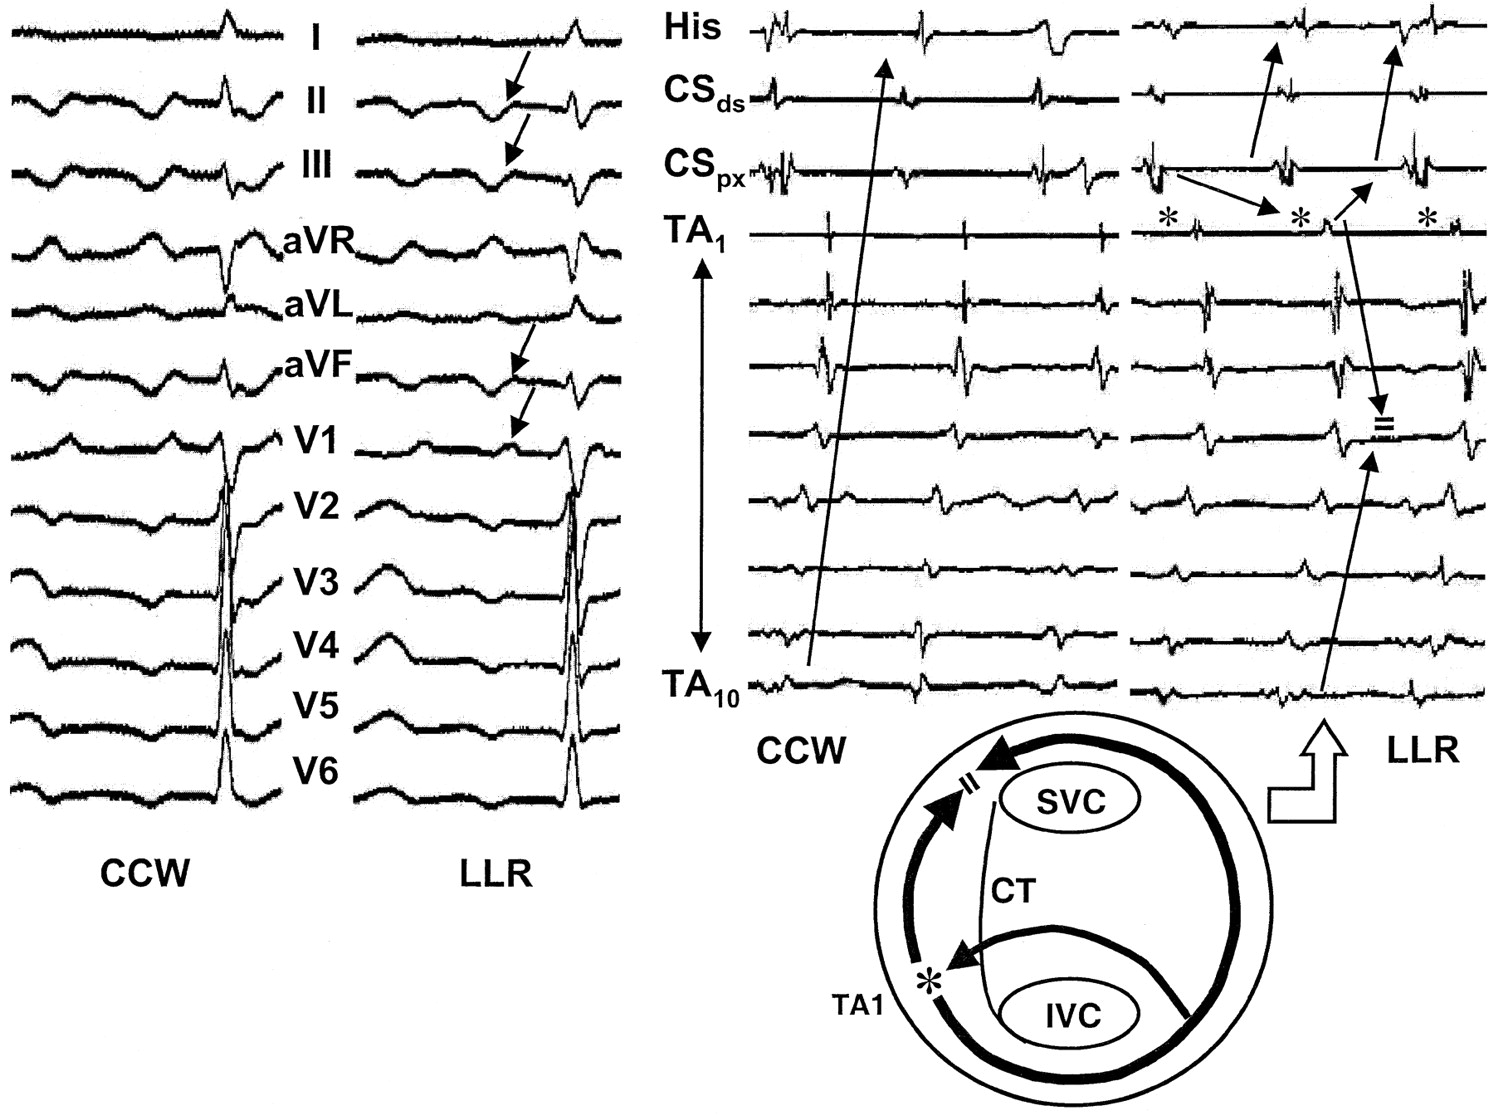 Surface Electrocardiographic Characteristics of Right and